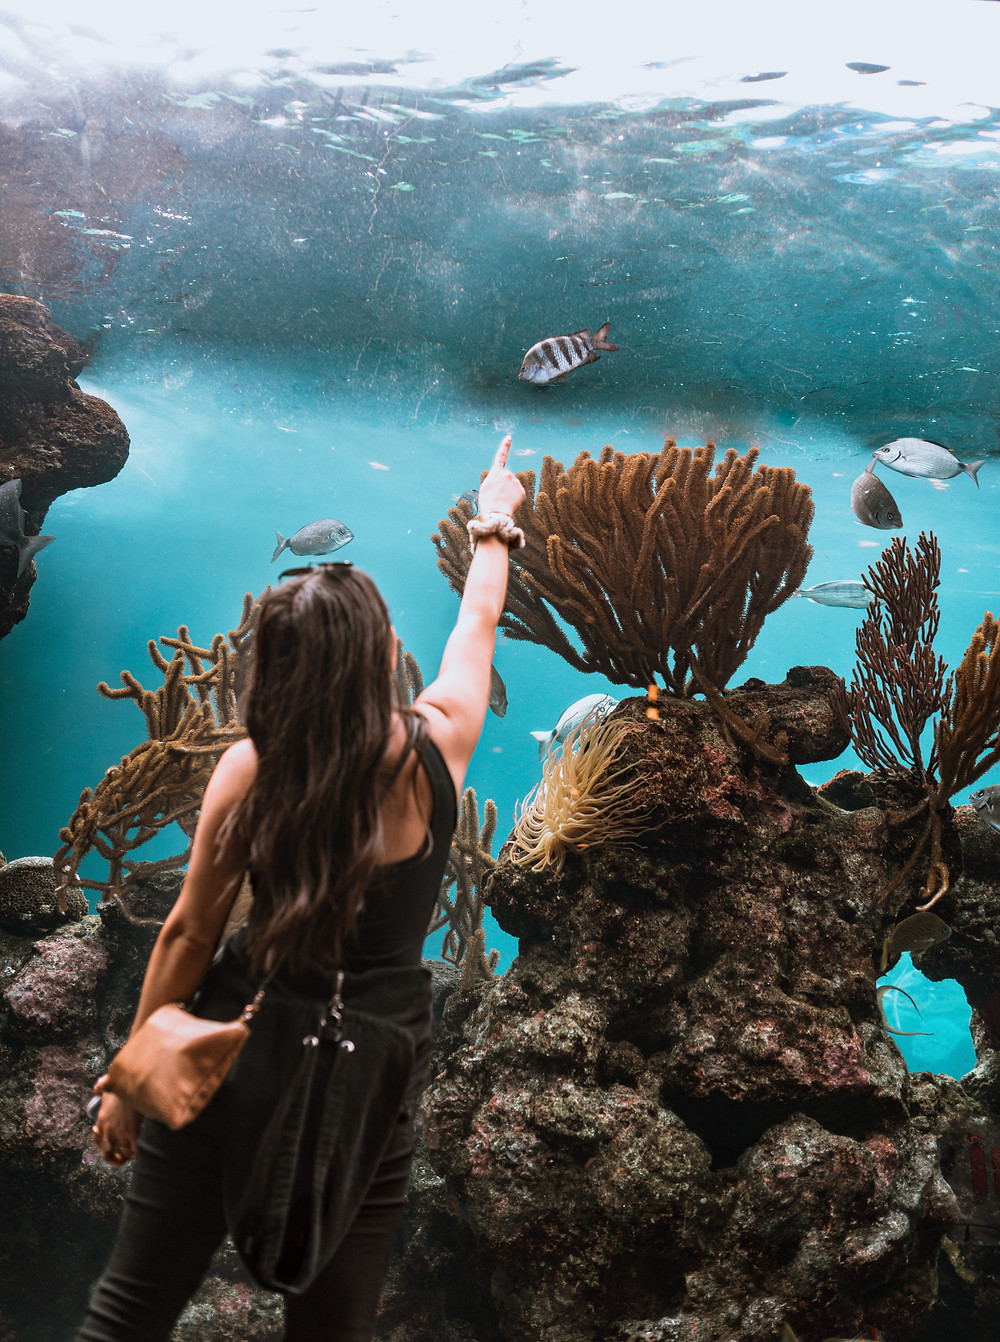 A woman fascinated by the underwater world in an Aquarium in Bermuda